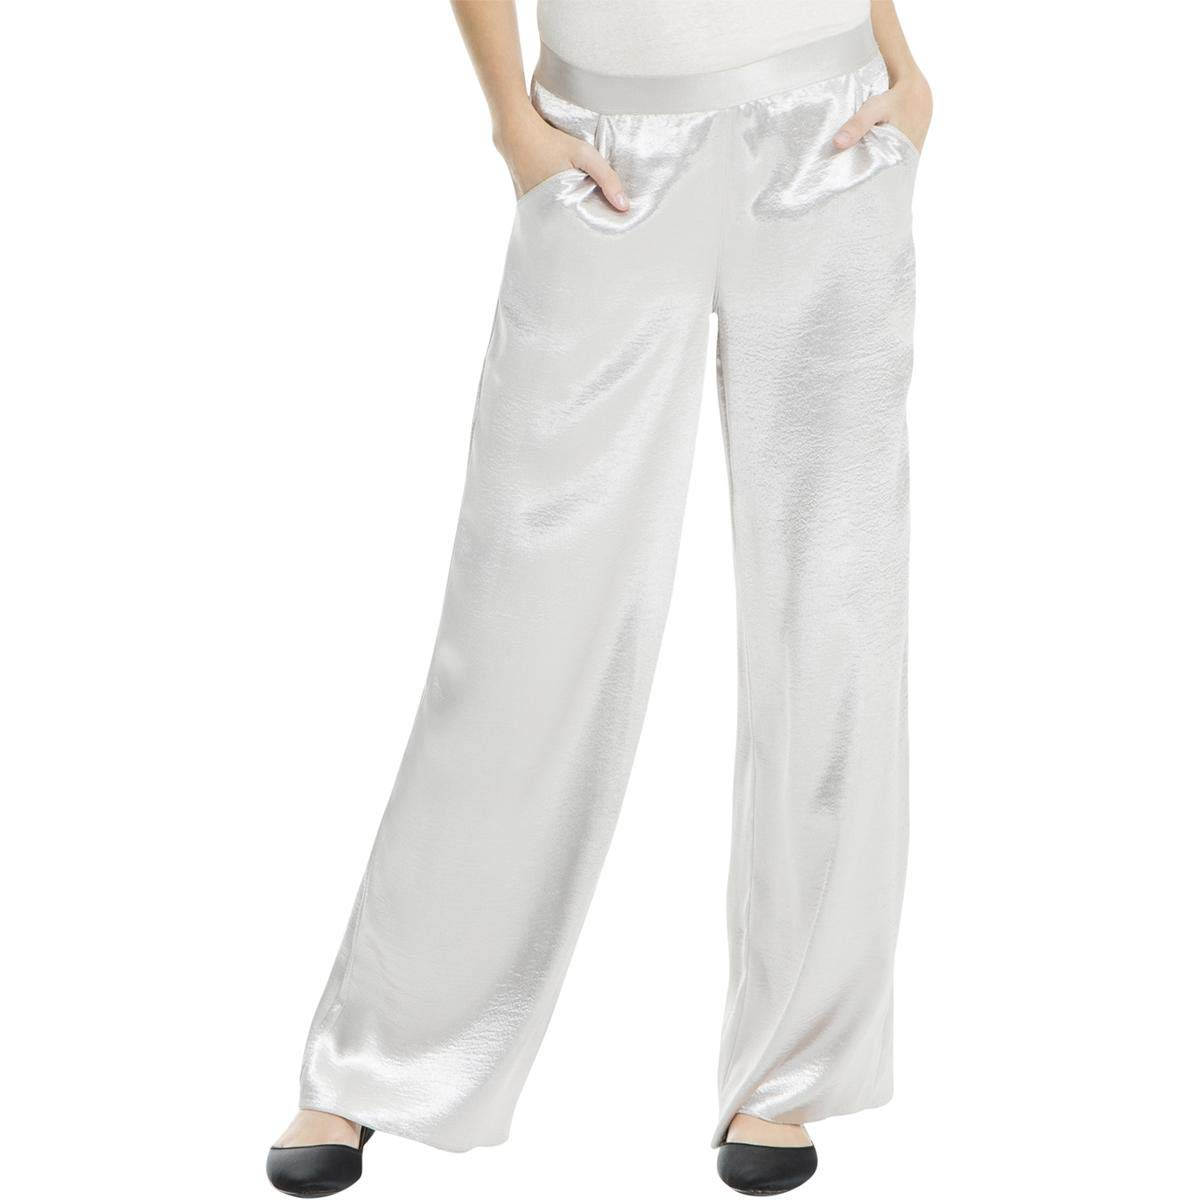 c57543ffd3a Max Studio Womens Satin Flat Front Wide Leg Pants Silver XL at Amazon  Women s Clothing store